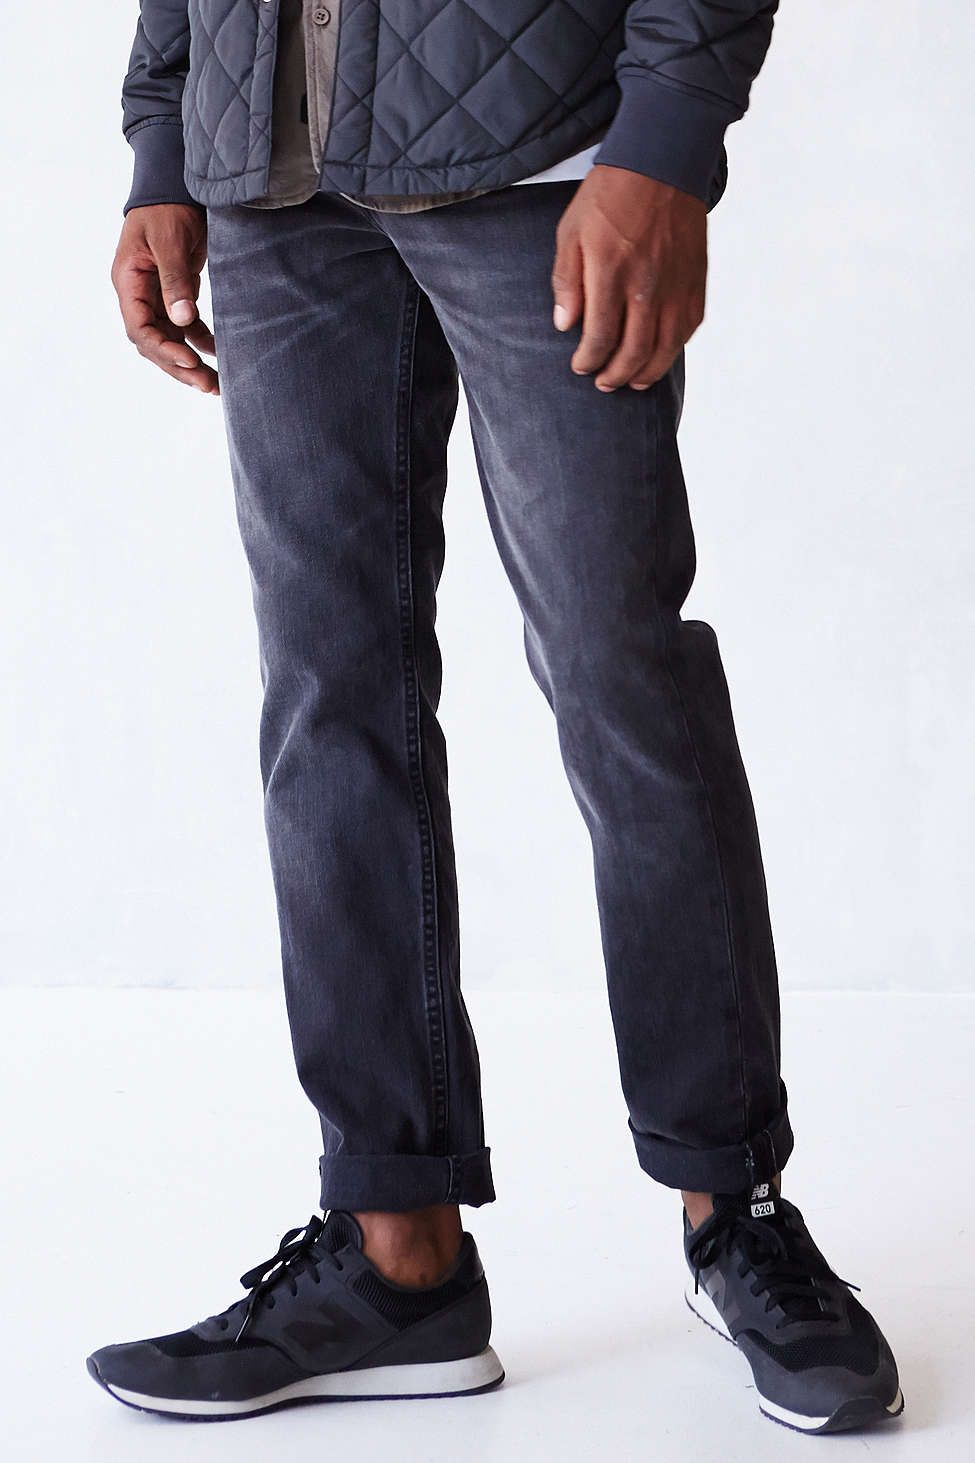 Levis 511 Gold Pan Slim Fit Jean Urban Outfitters Slim Fit Jeans Jeans Fit Slim Fit